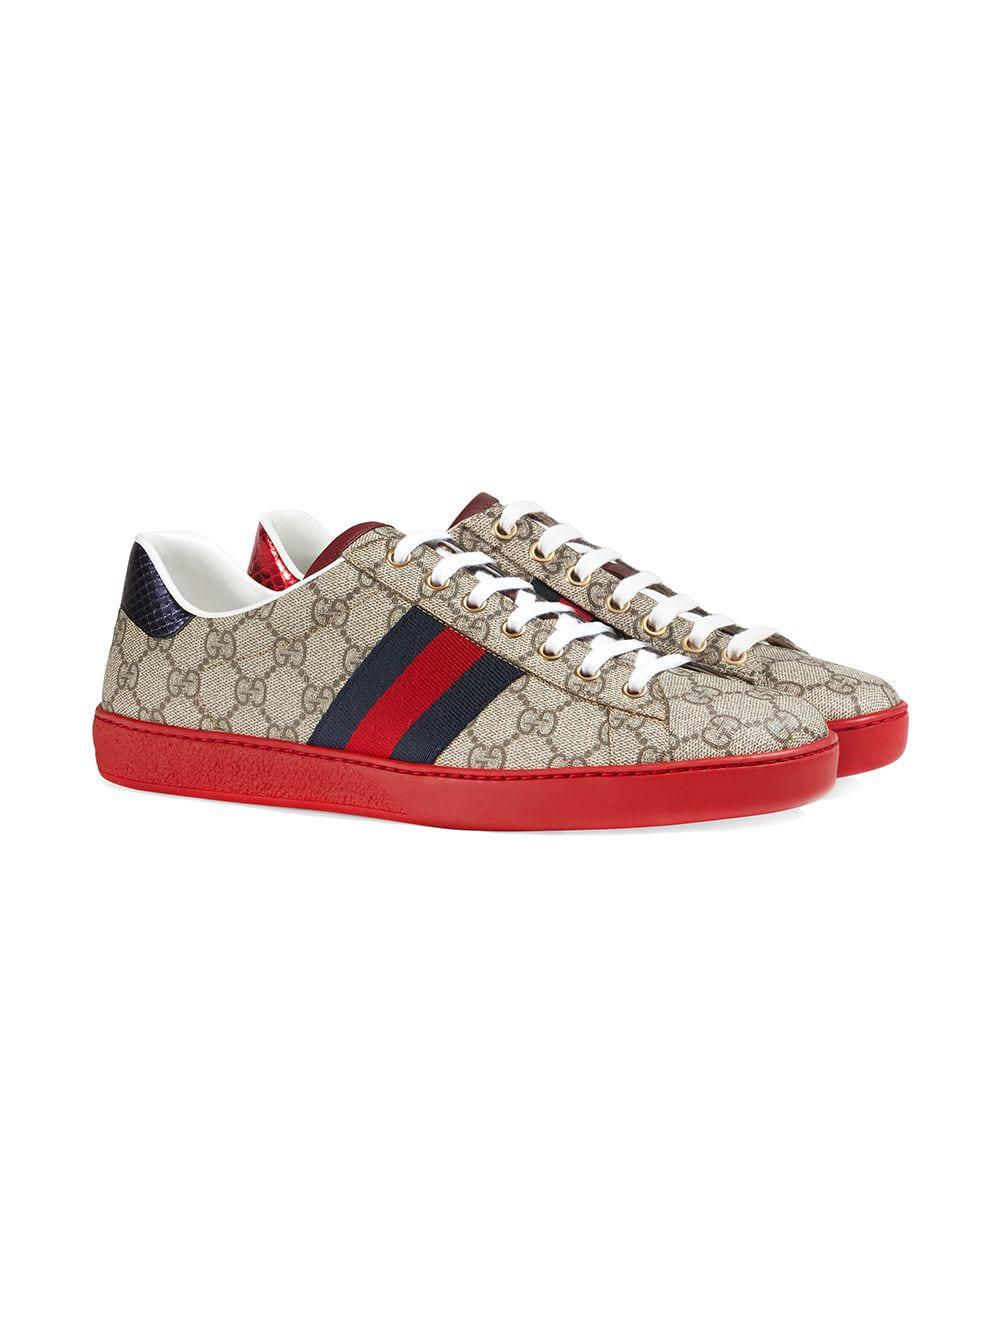 be8e7bf69bd Lyst - Gucci Ace GG Supreme Sneaker for Men - Save 33%